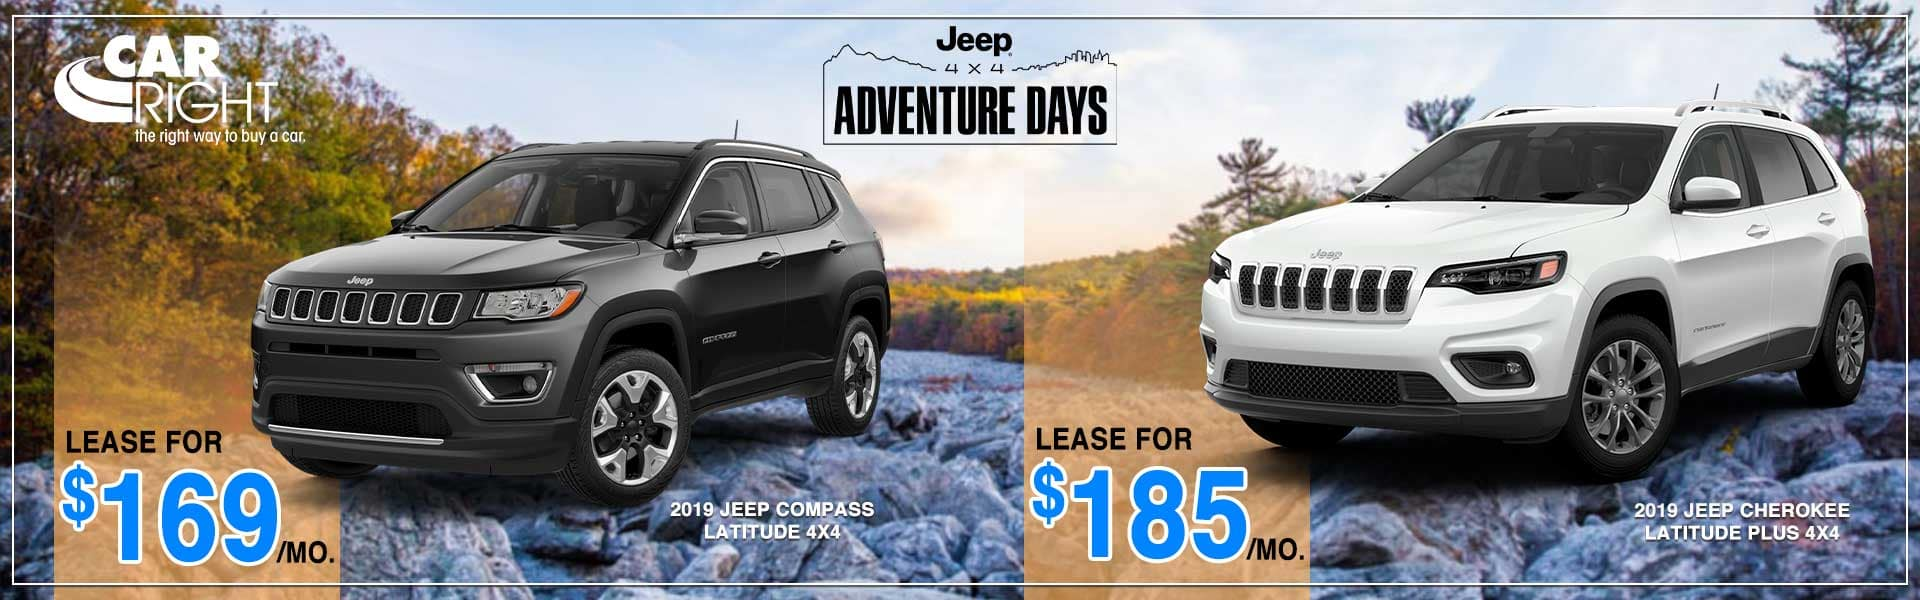 Ram power days dodge power dollars jeep adventure days Chrysler dodge jeep ram carright Diehl auto moon township lease special new vehicle special ram lease jeep lease mopar